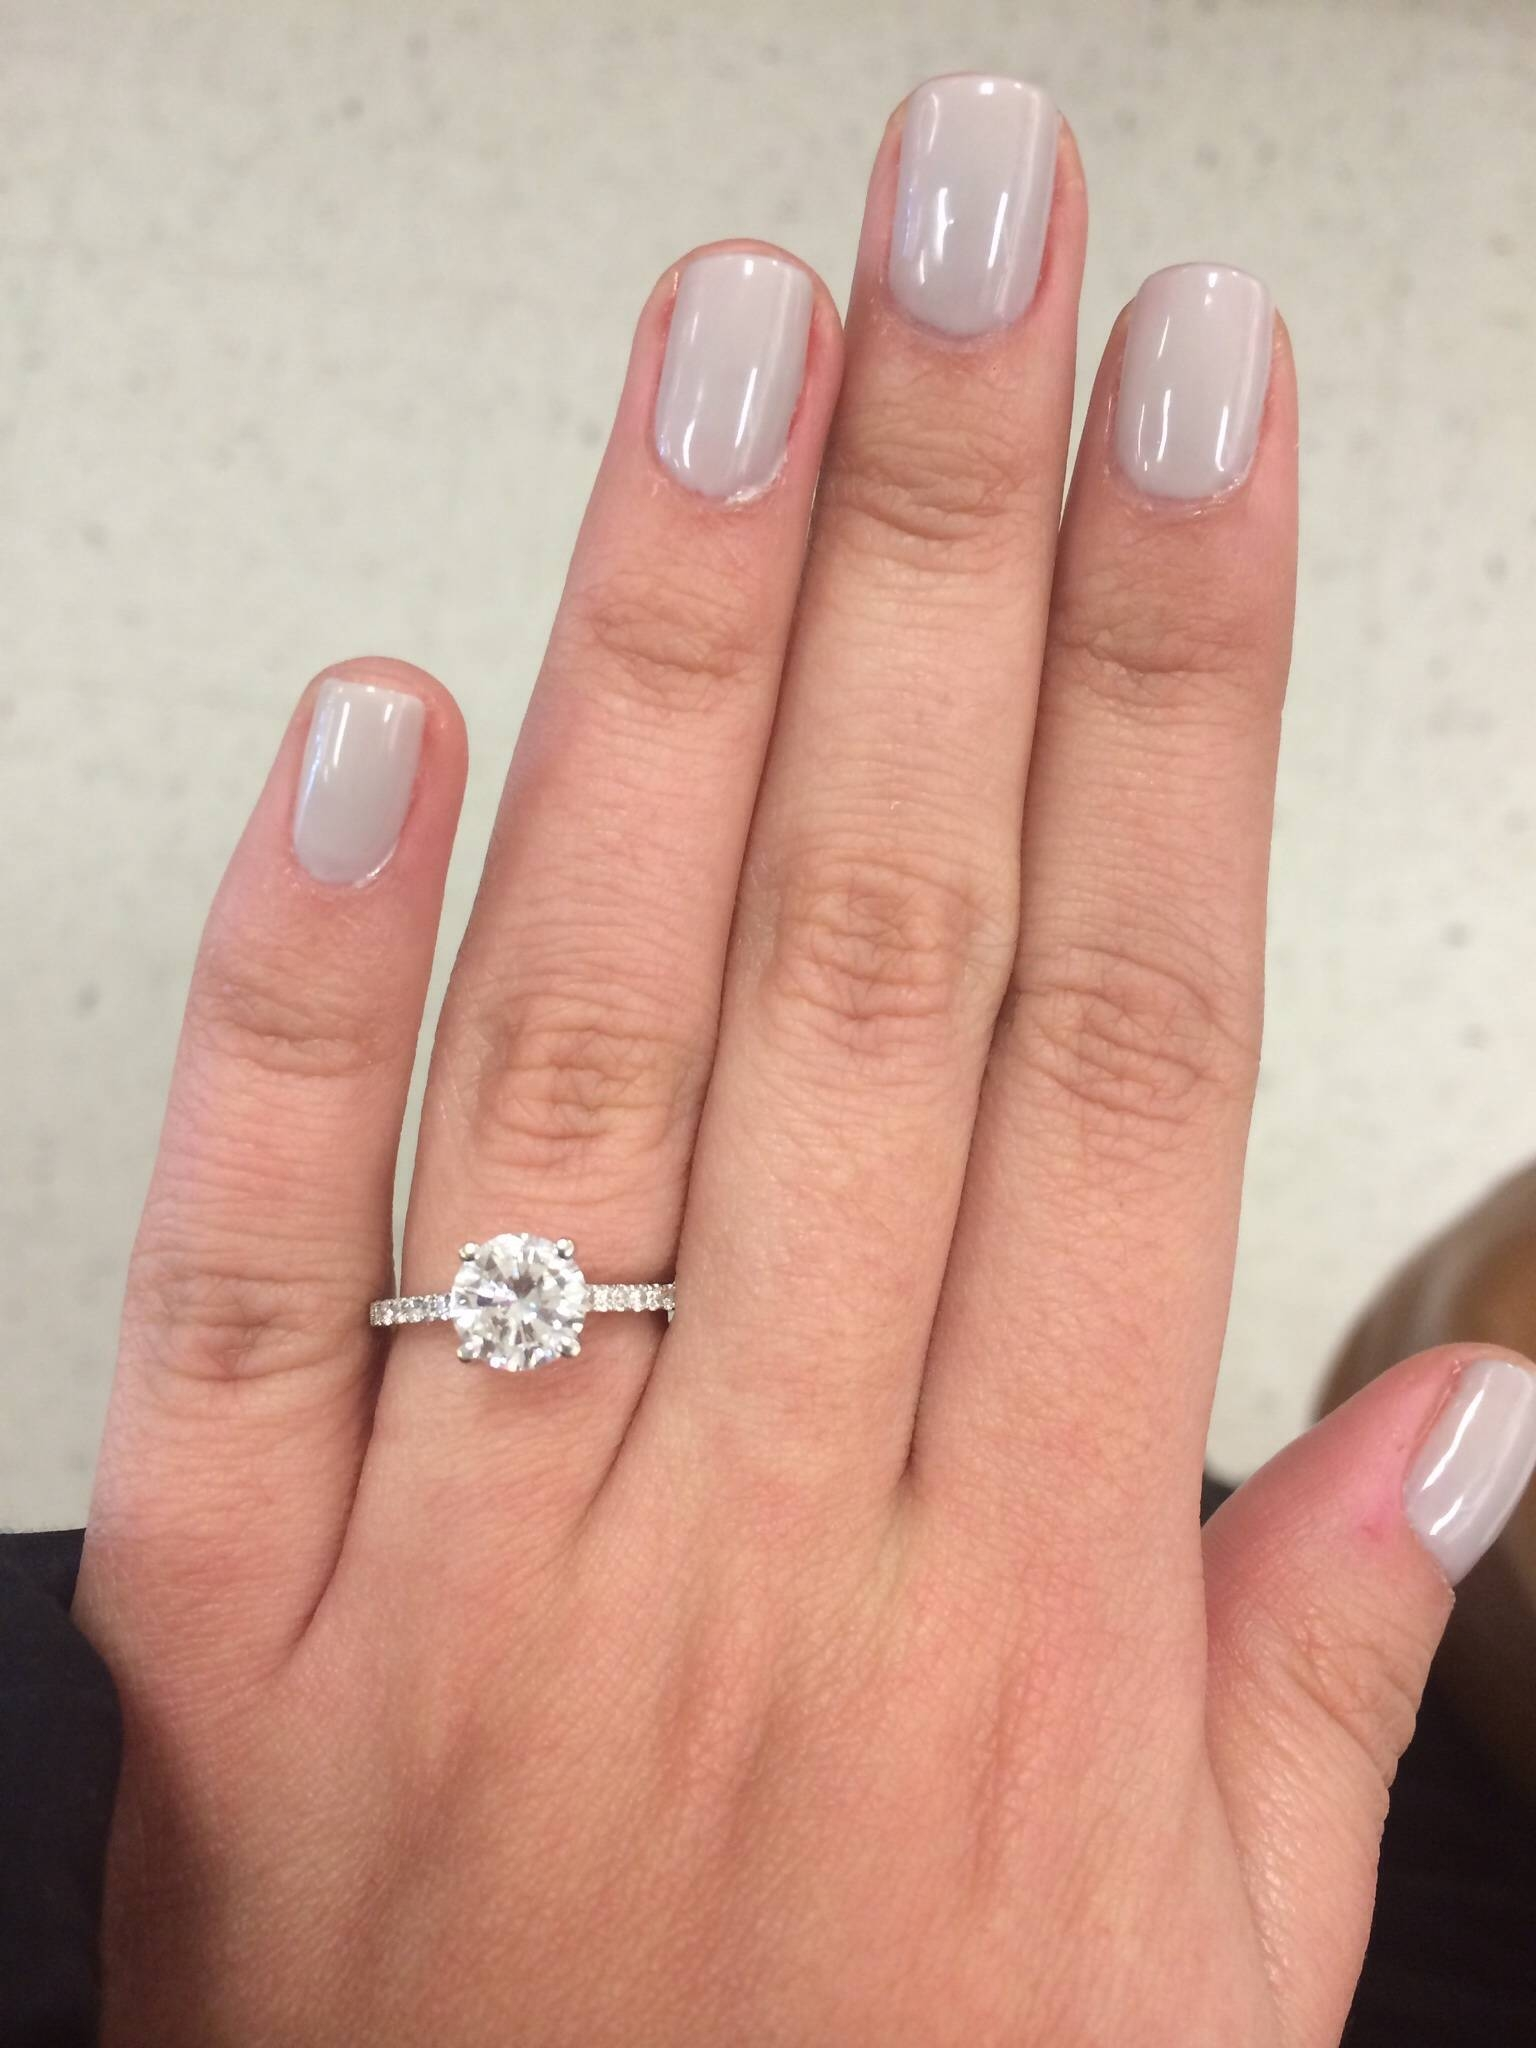 Does Anyone Have Matching Wedding Rings With Their Husband? (Post Intended For Current Husband Wedding Bands (View 6 of 15)